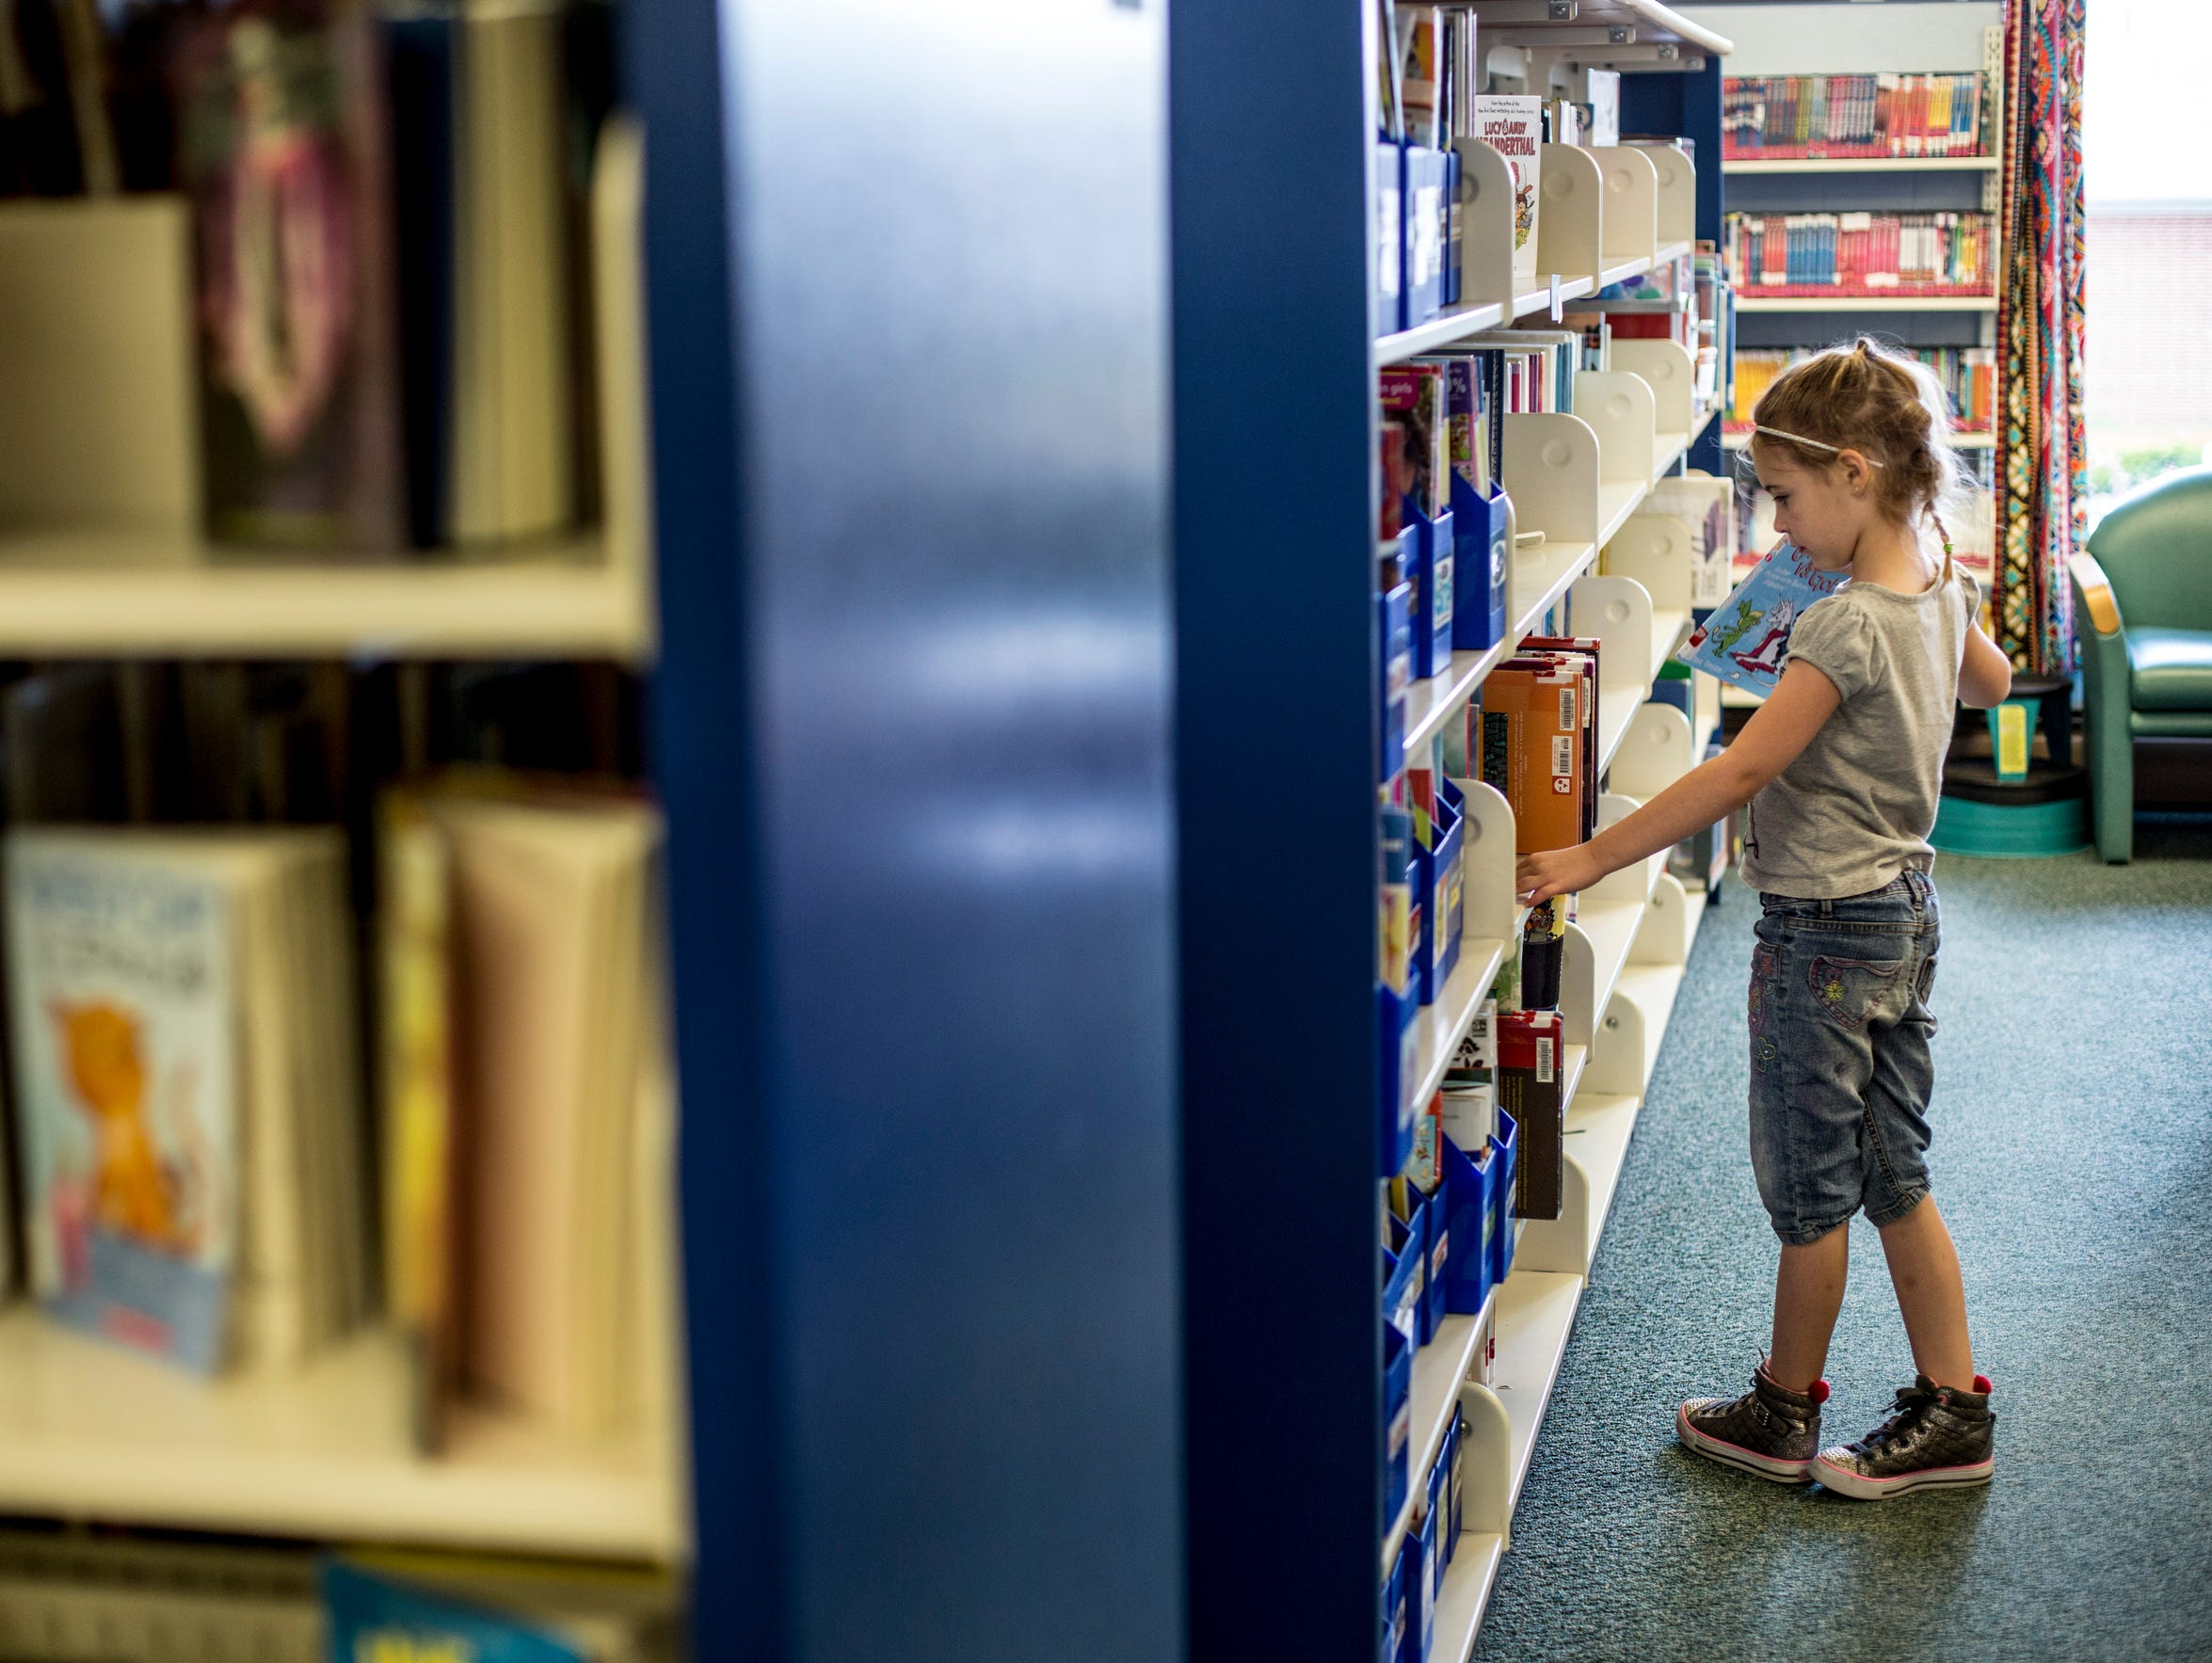 Tori Stein, 8, looks over book shelves during one of